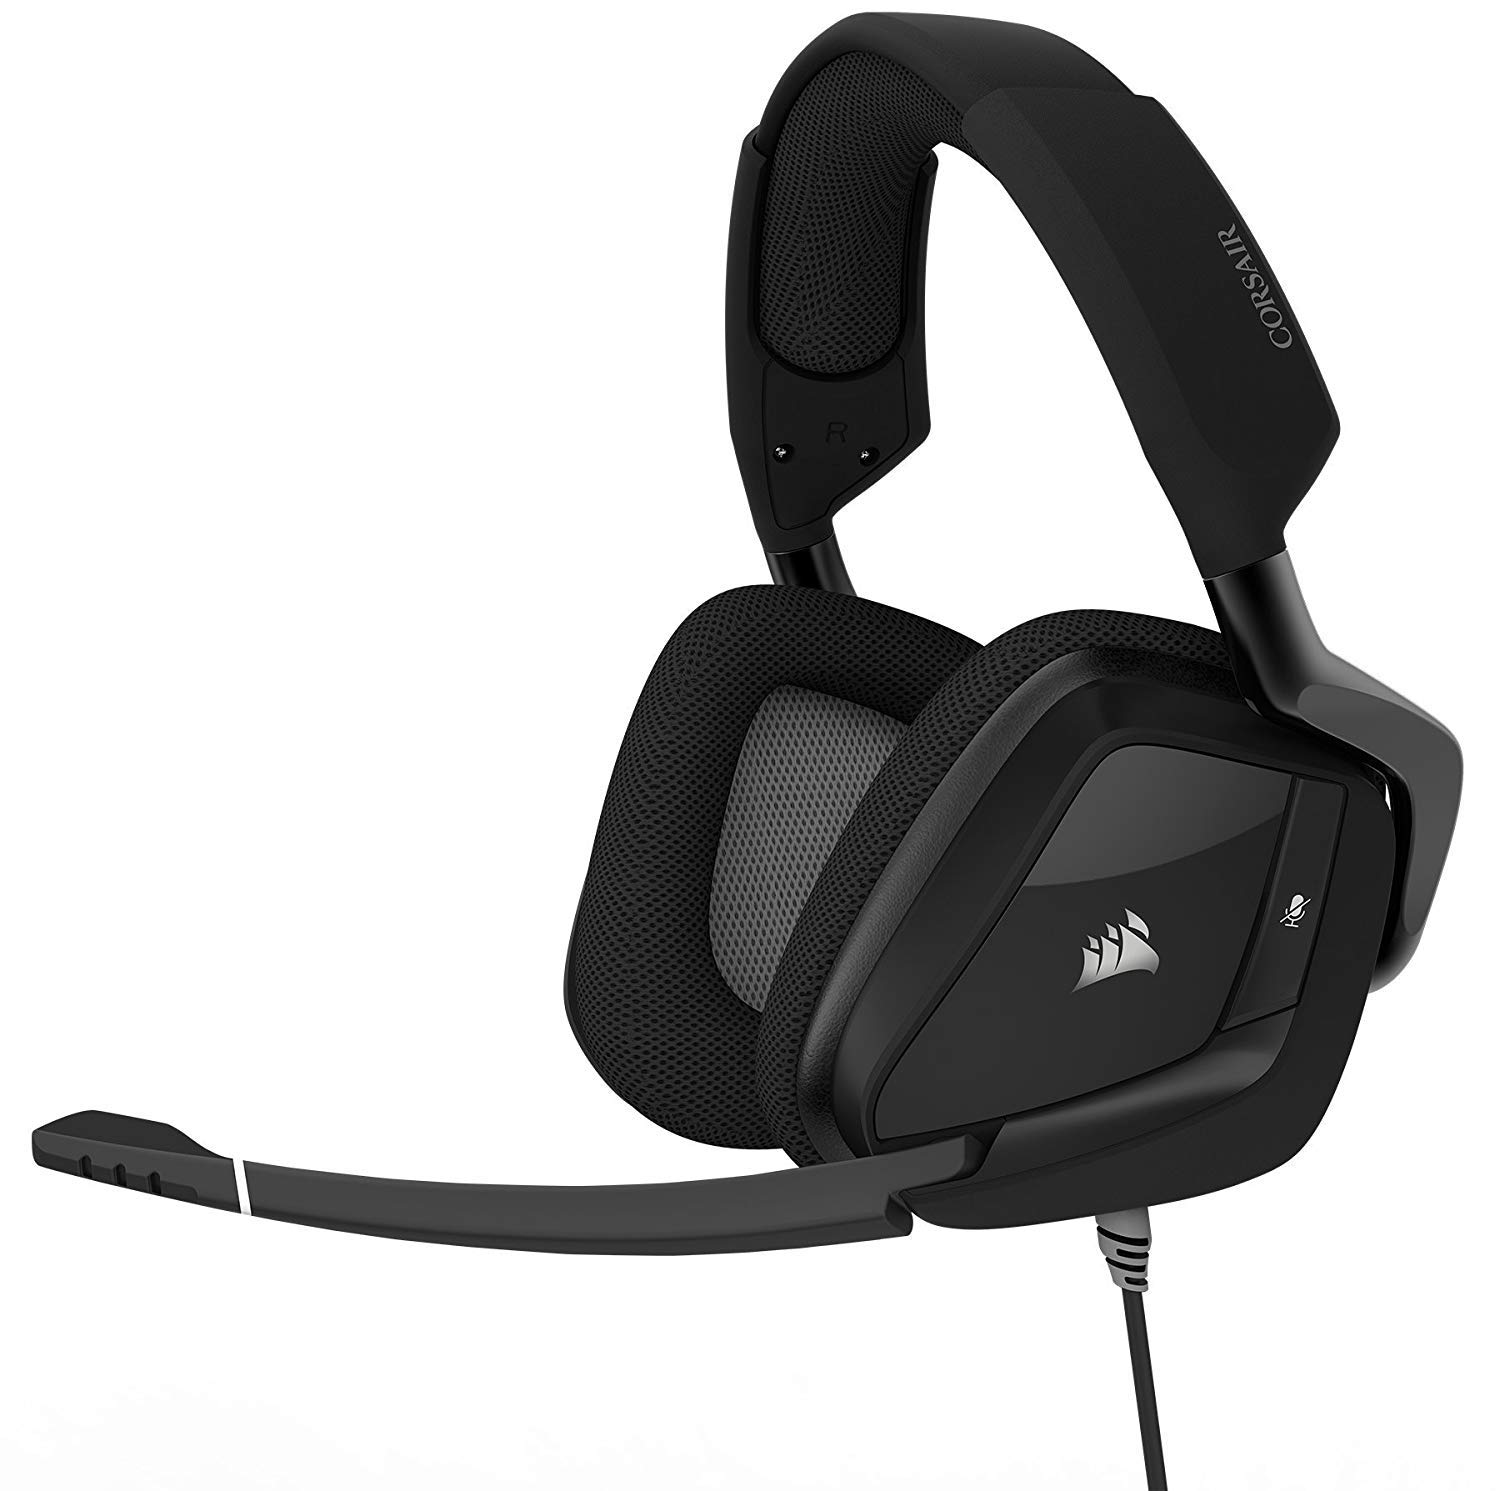 Corsair Void Pro Rgb Usb Gaming Headset - Dolby 7.1 S (7jw6)